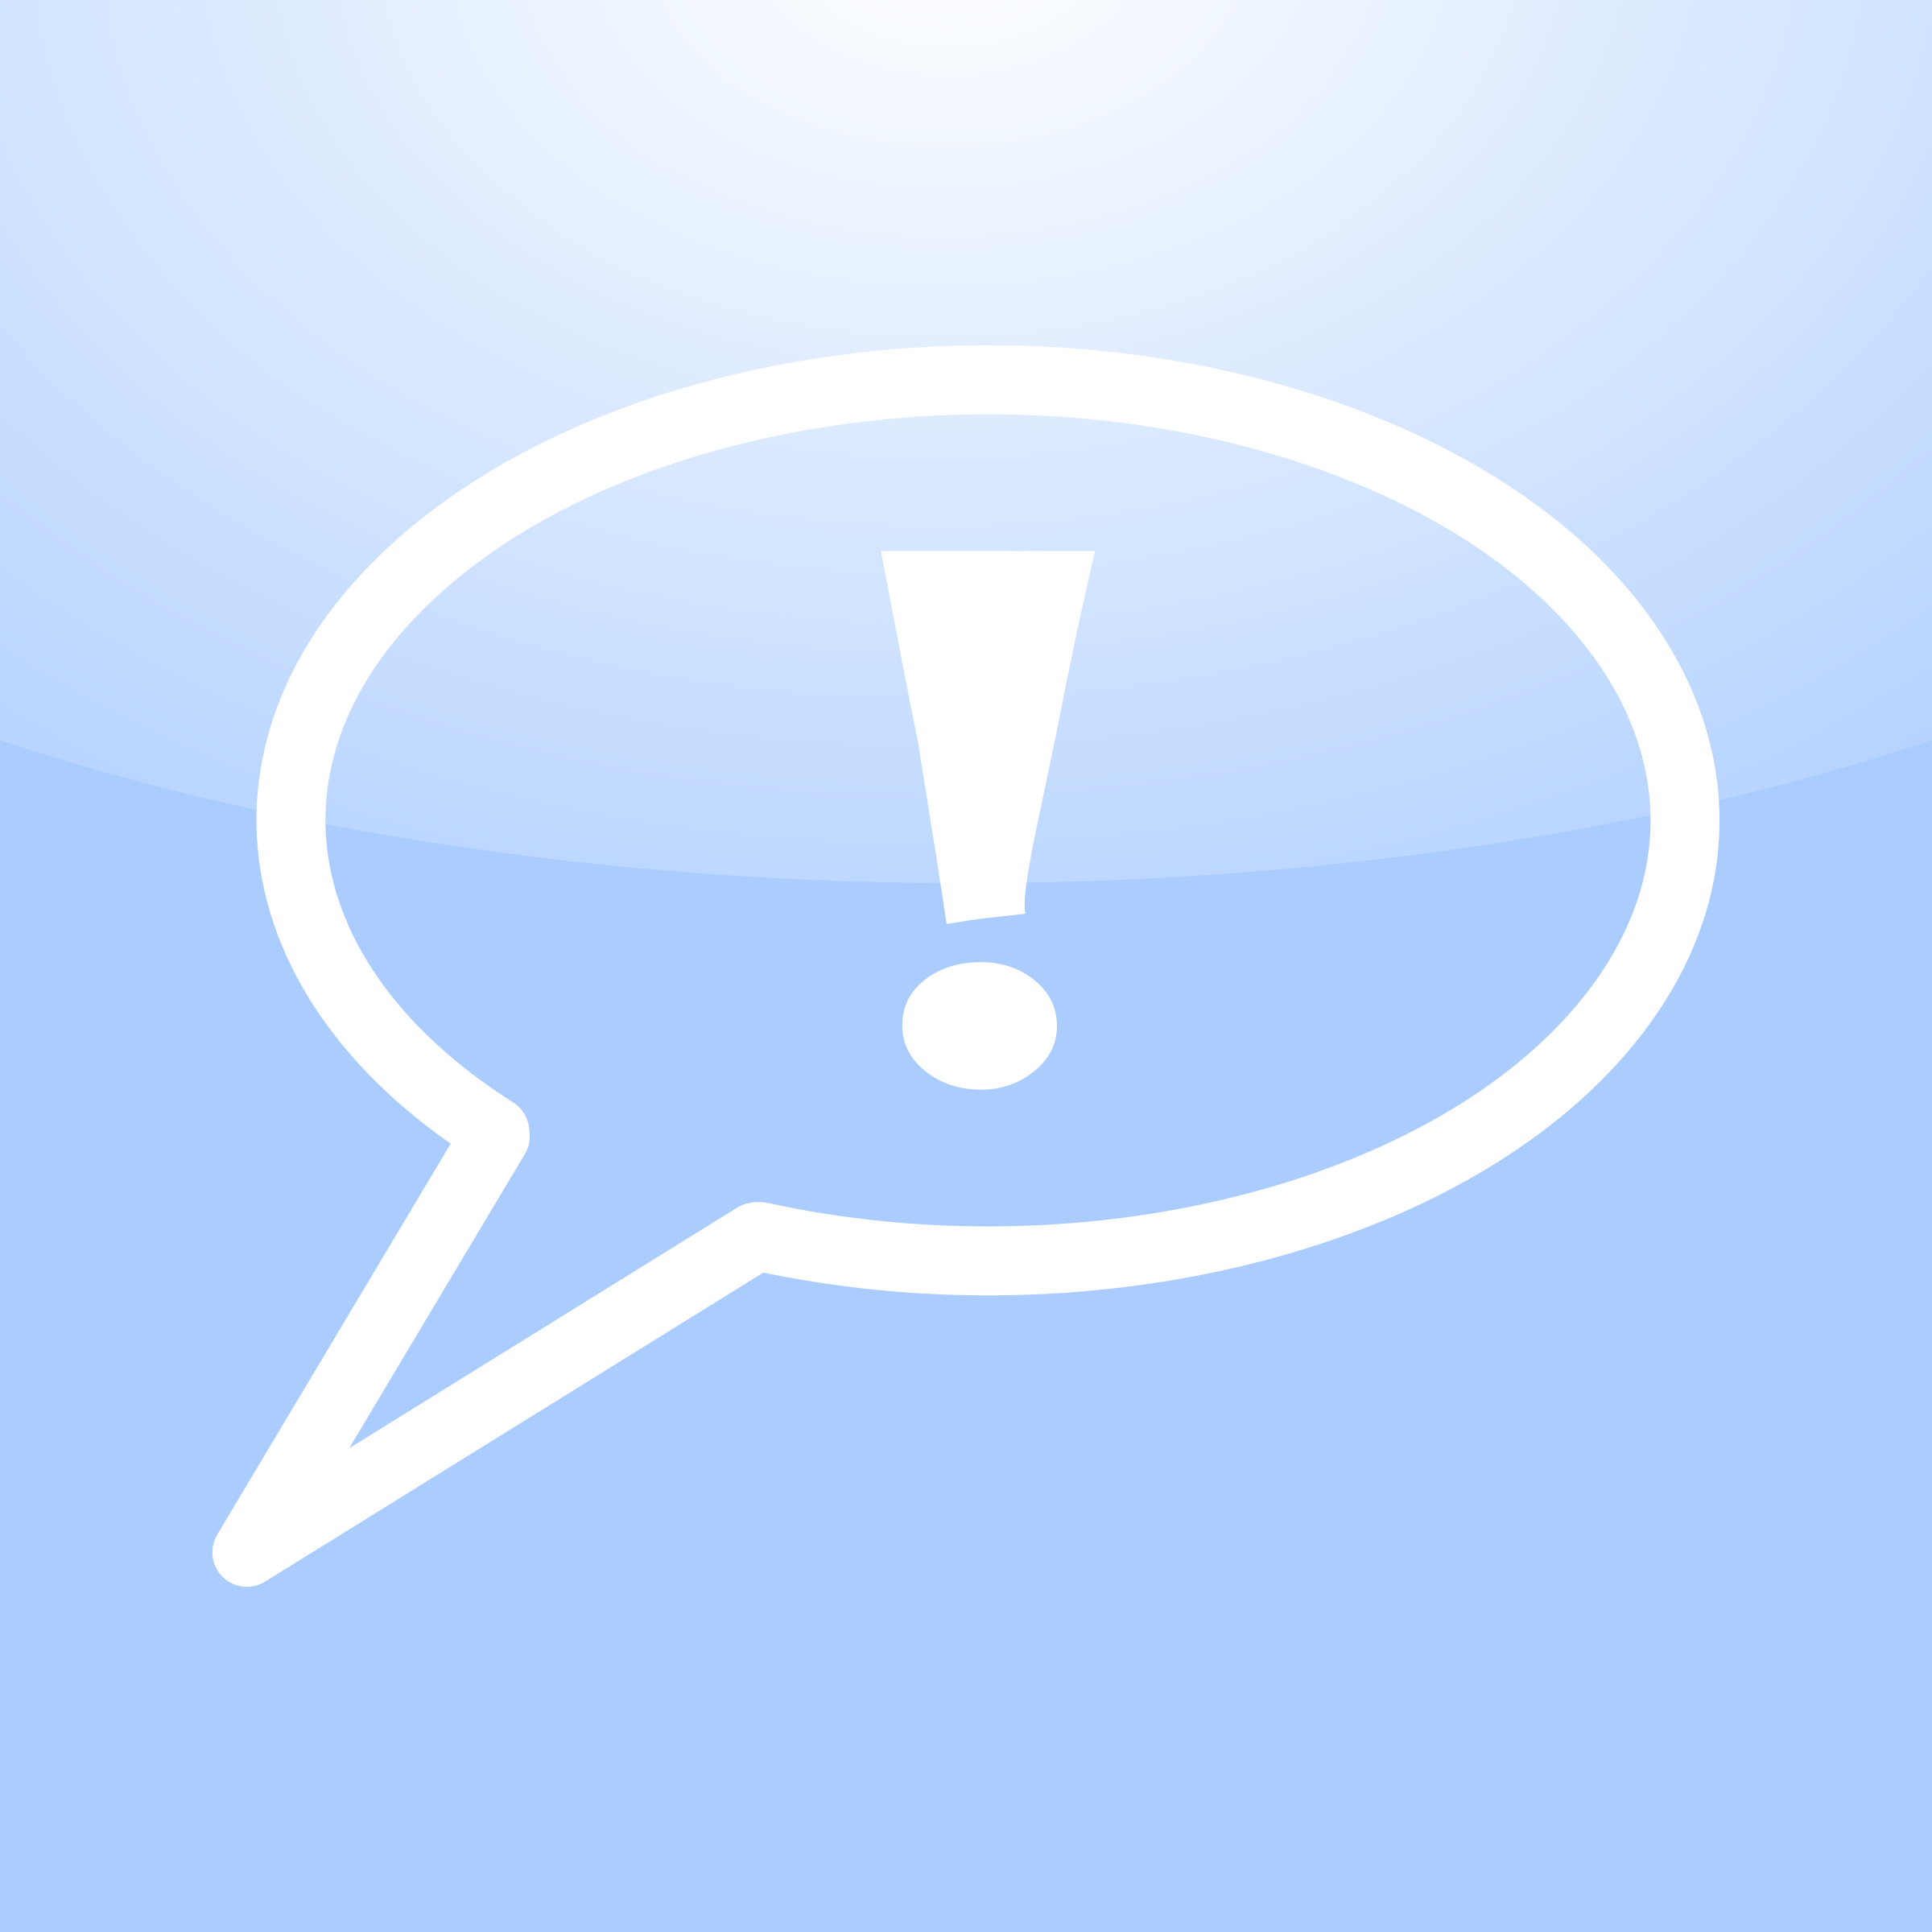 Free Exclamation Icon Png image #26947